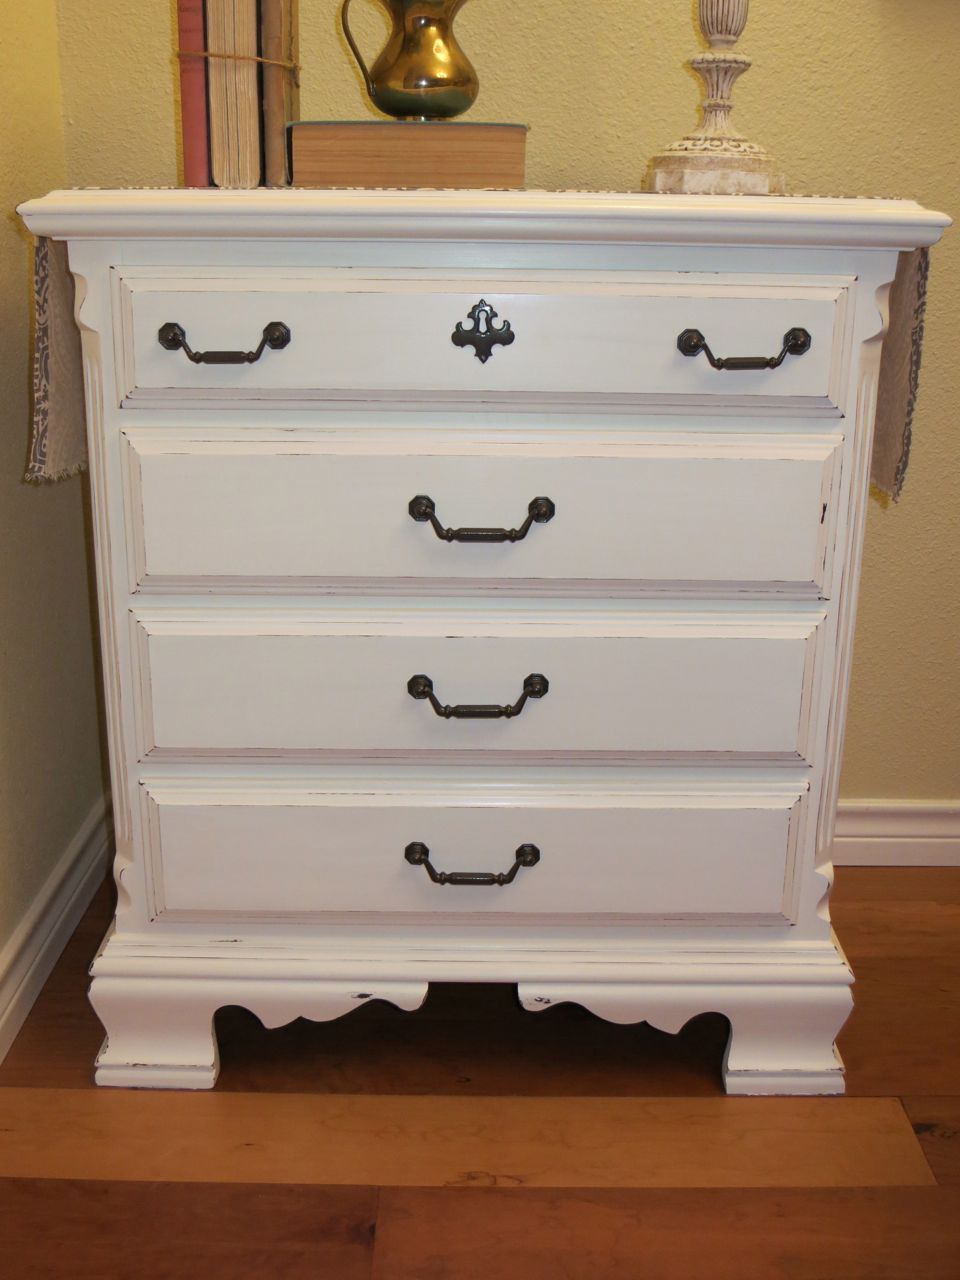 Antique White Paint for Furniture Fresh Diy Furniture Transformation with Homemade Chalk Paint